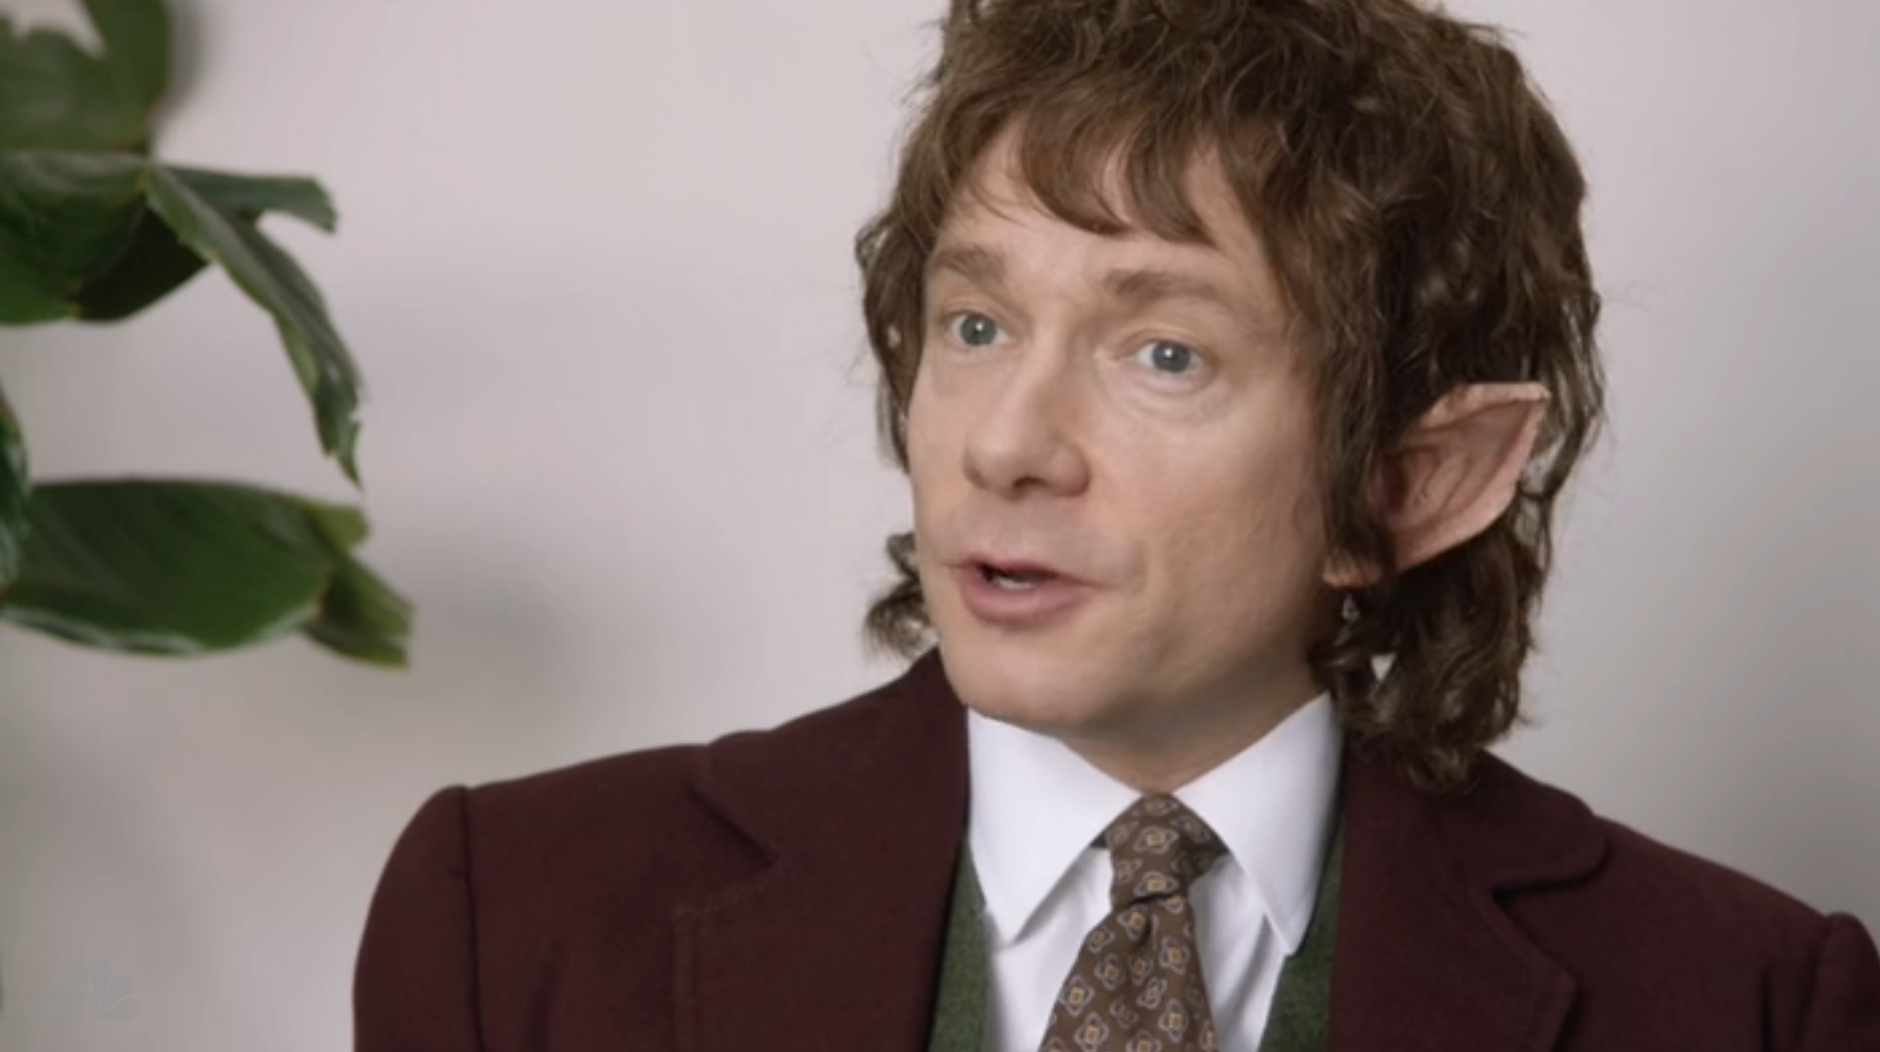 Lo Hobbit e The Office in un breve crossover con Martin Freeman